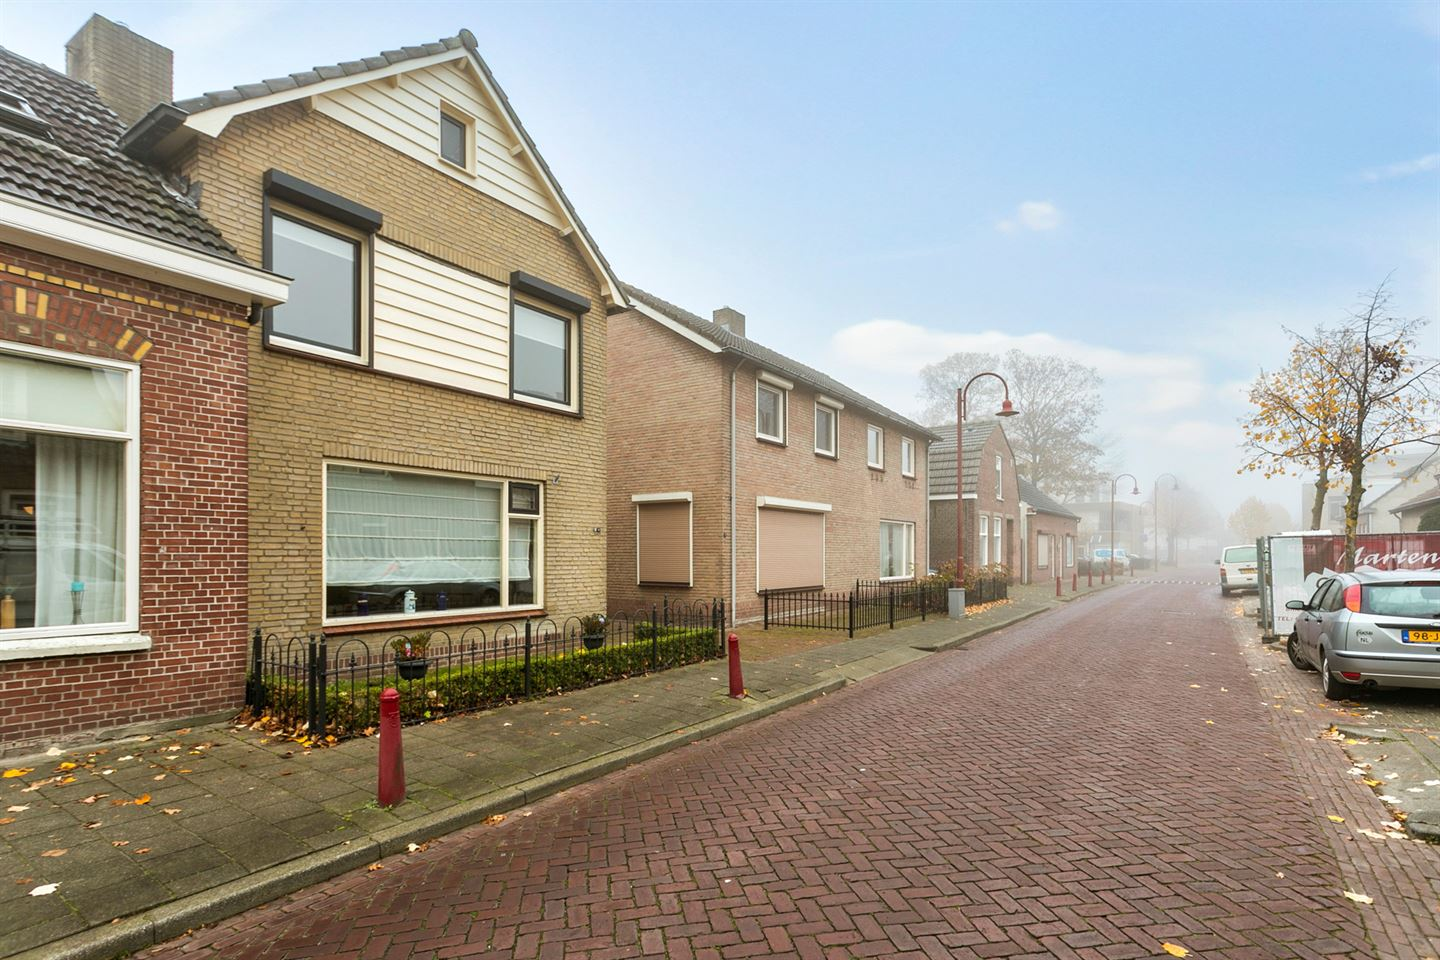 View photo 5 of Kloosterstraat 3 a